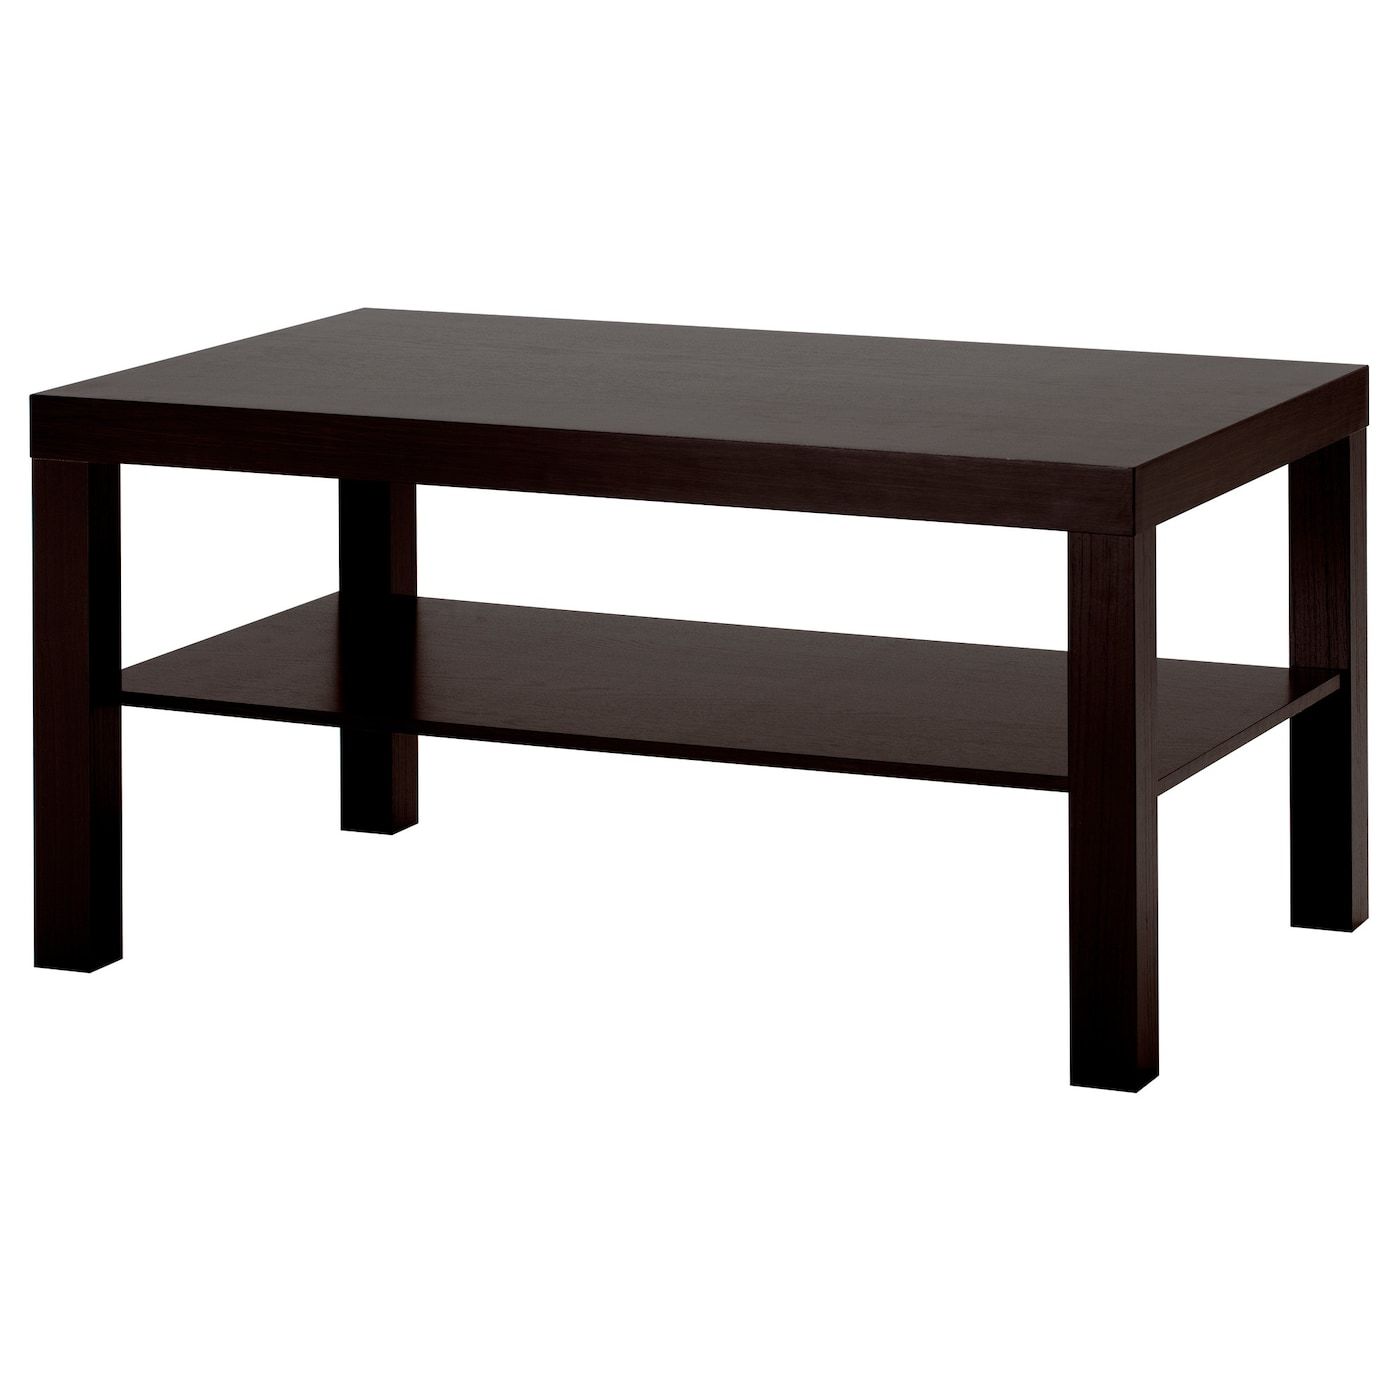 lack coffee table black brown 90 x 55 cm ikea. Black Bedroom Furniture Sets. Home Design Ideas